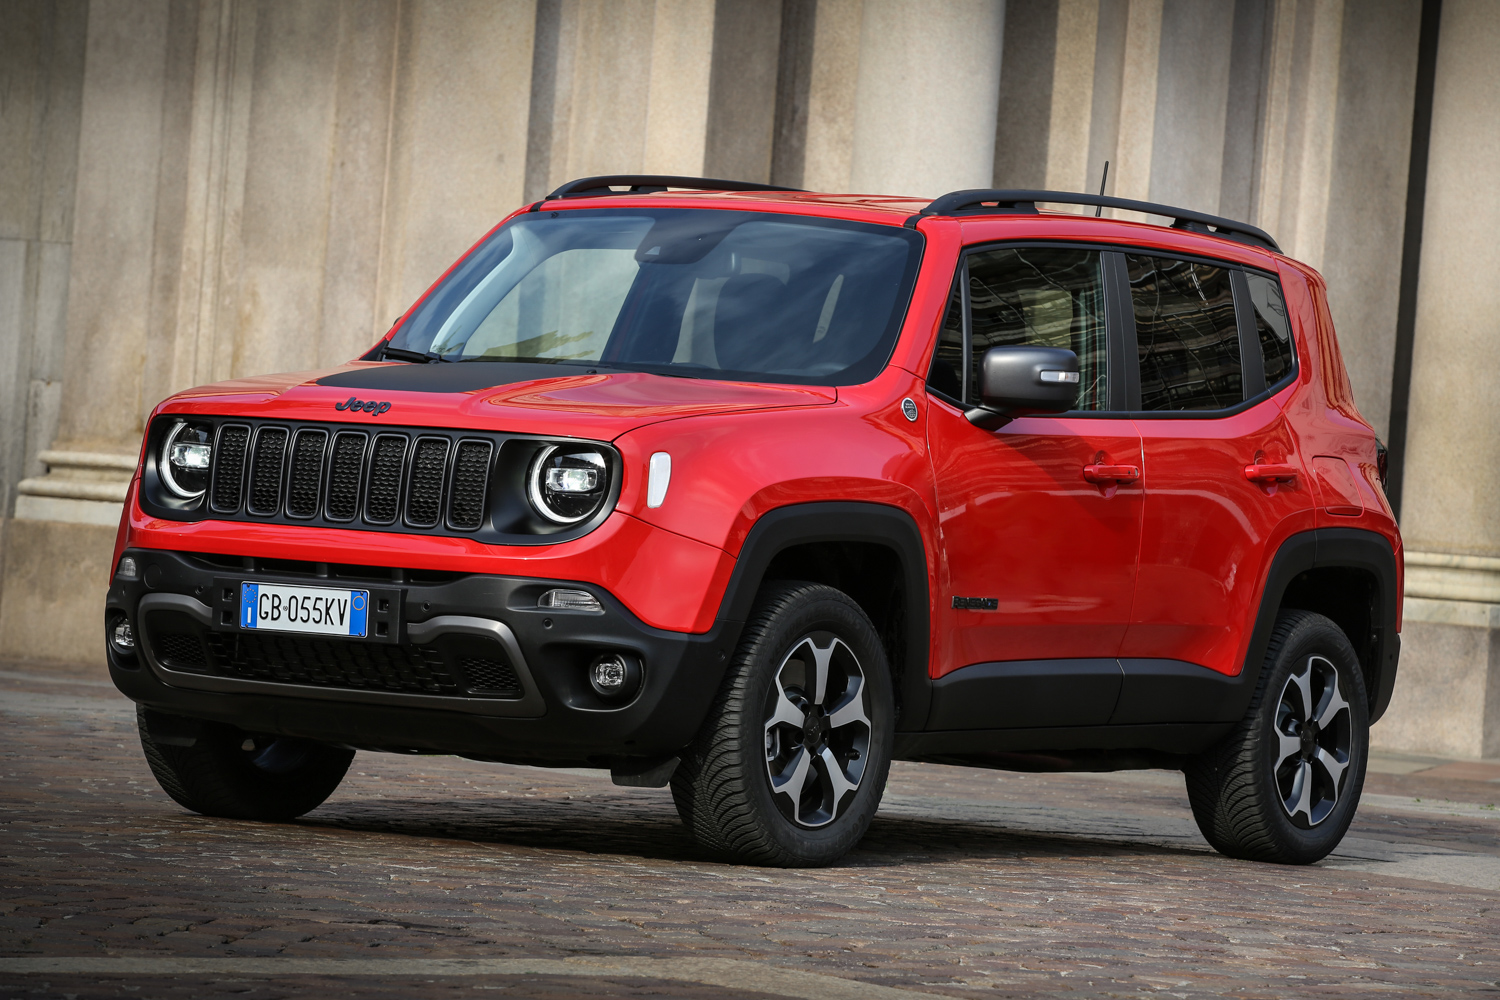 Car News | Renegade 4xe is the first plug-in hybrid Jeep | CompleteCar.ie